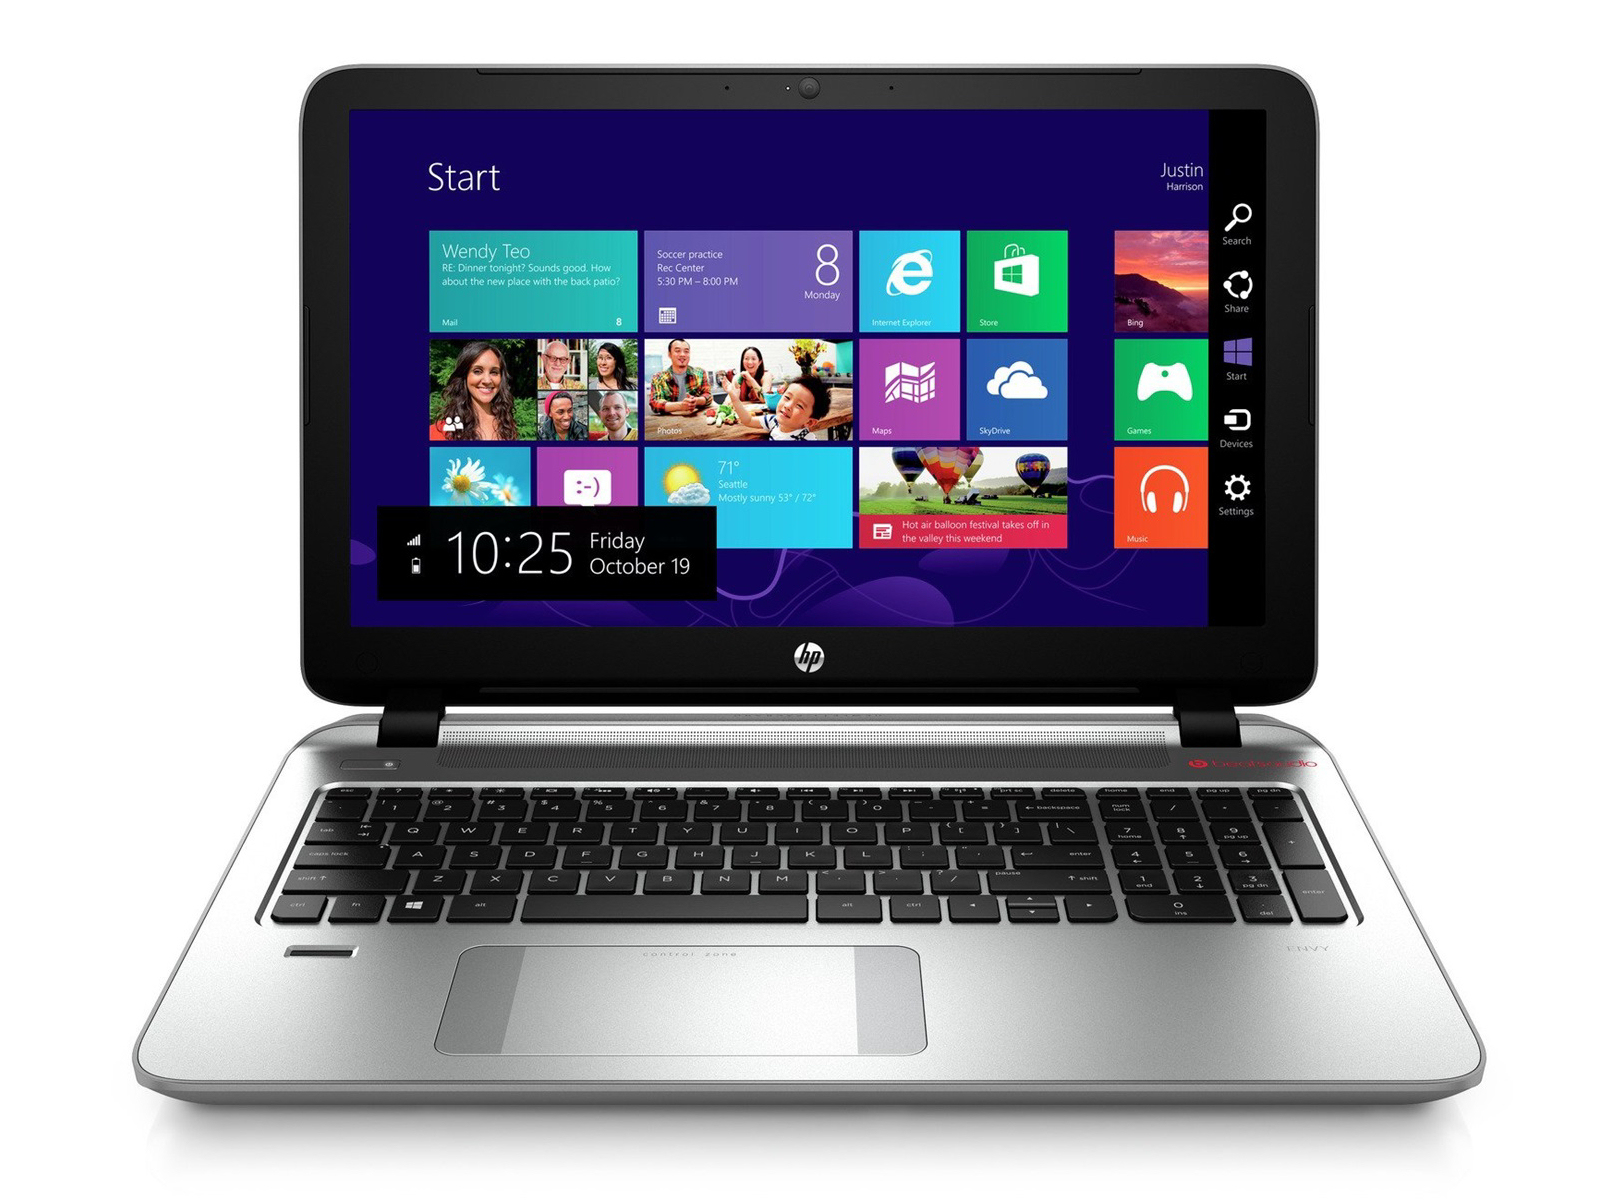 HP Introduces ZBook Workstations and Envy 15 PC for Creative Professionals